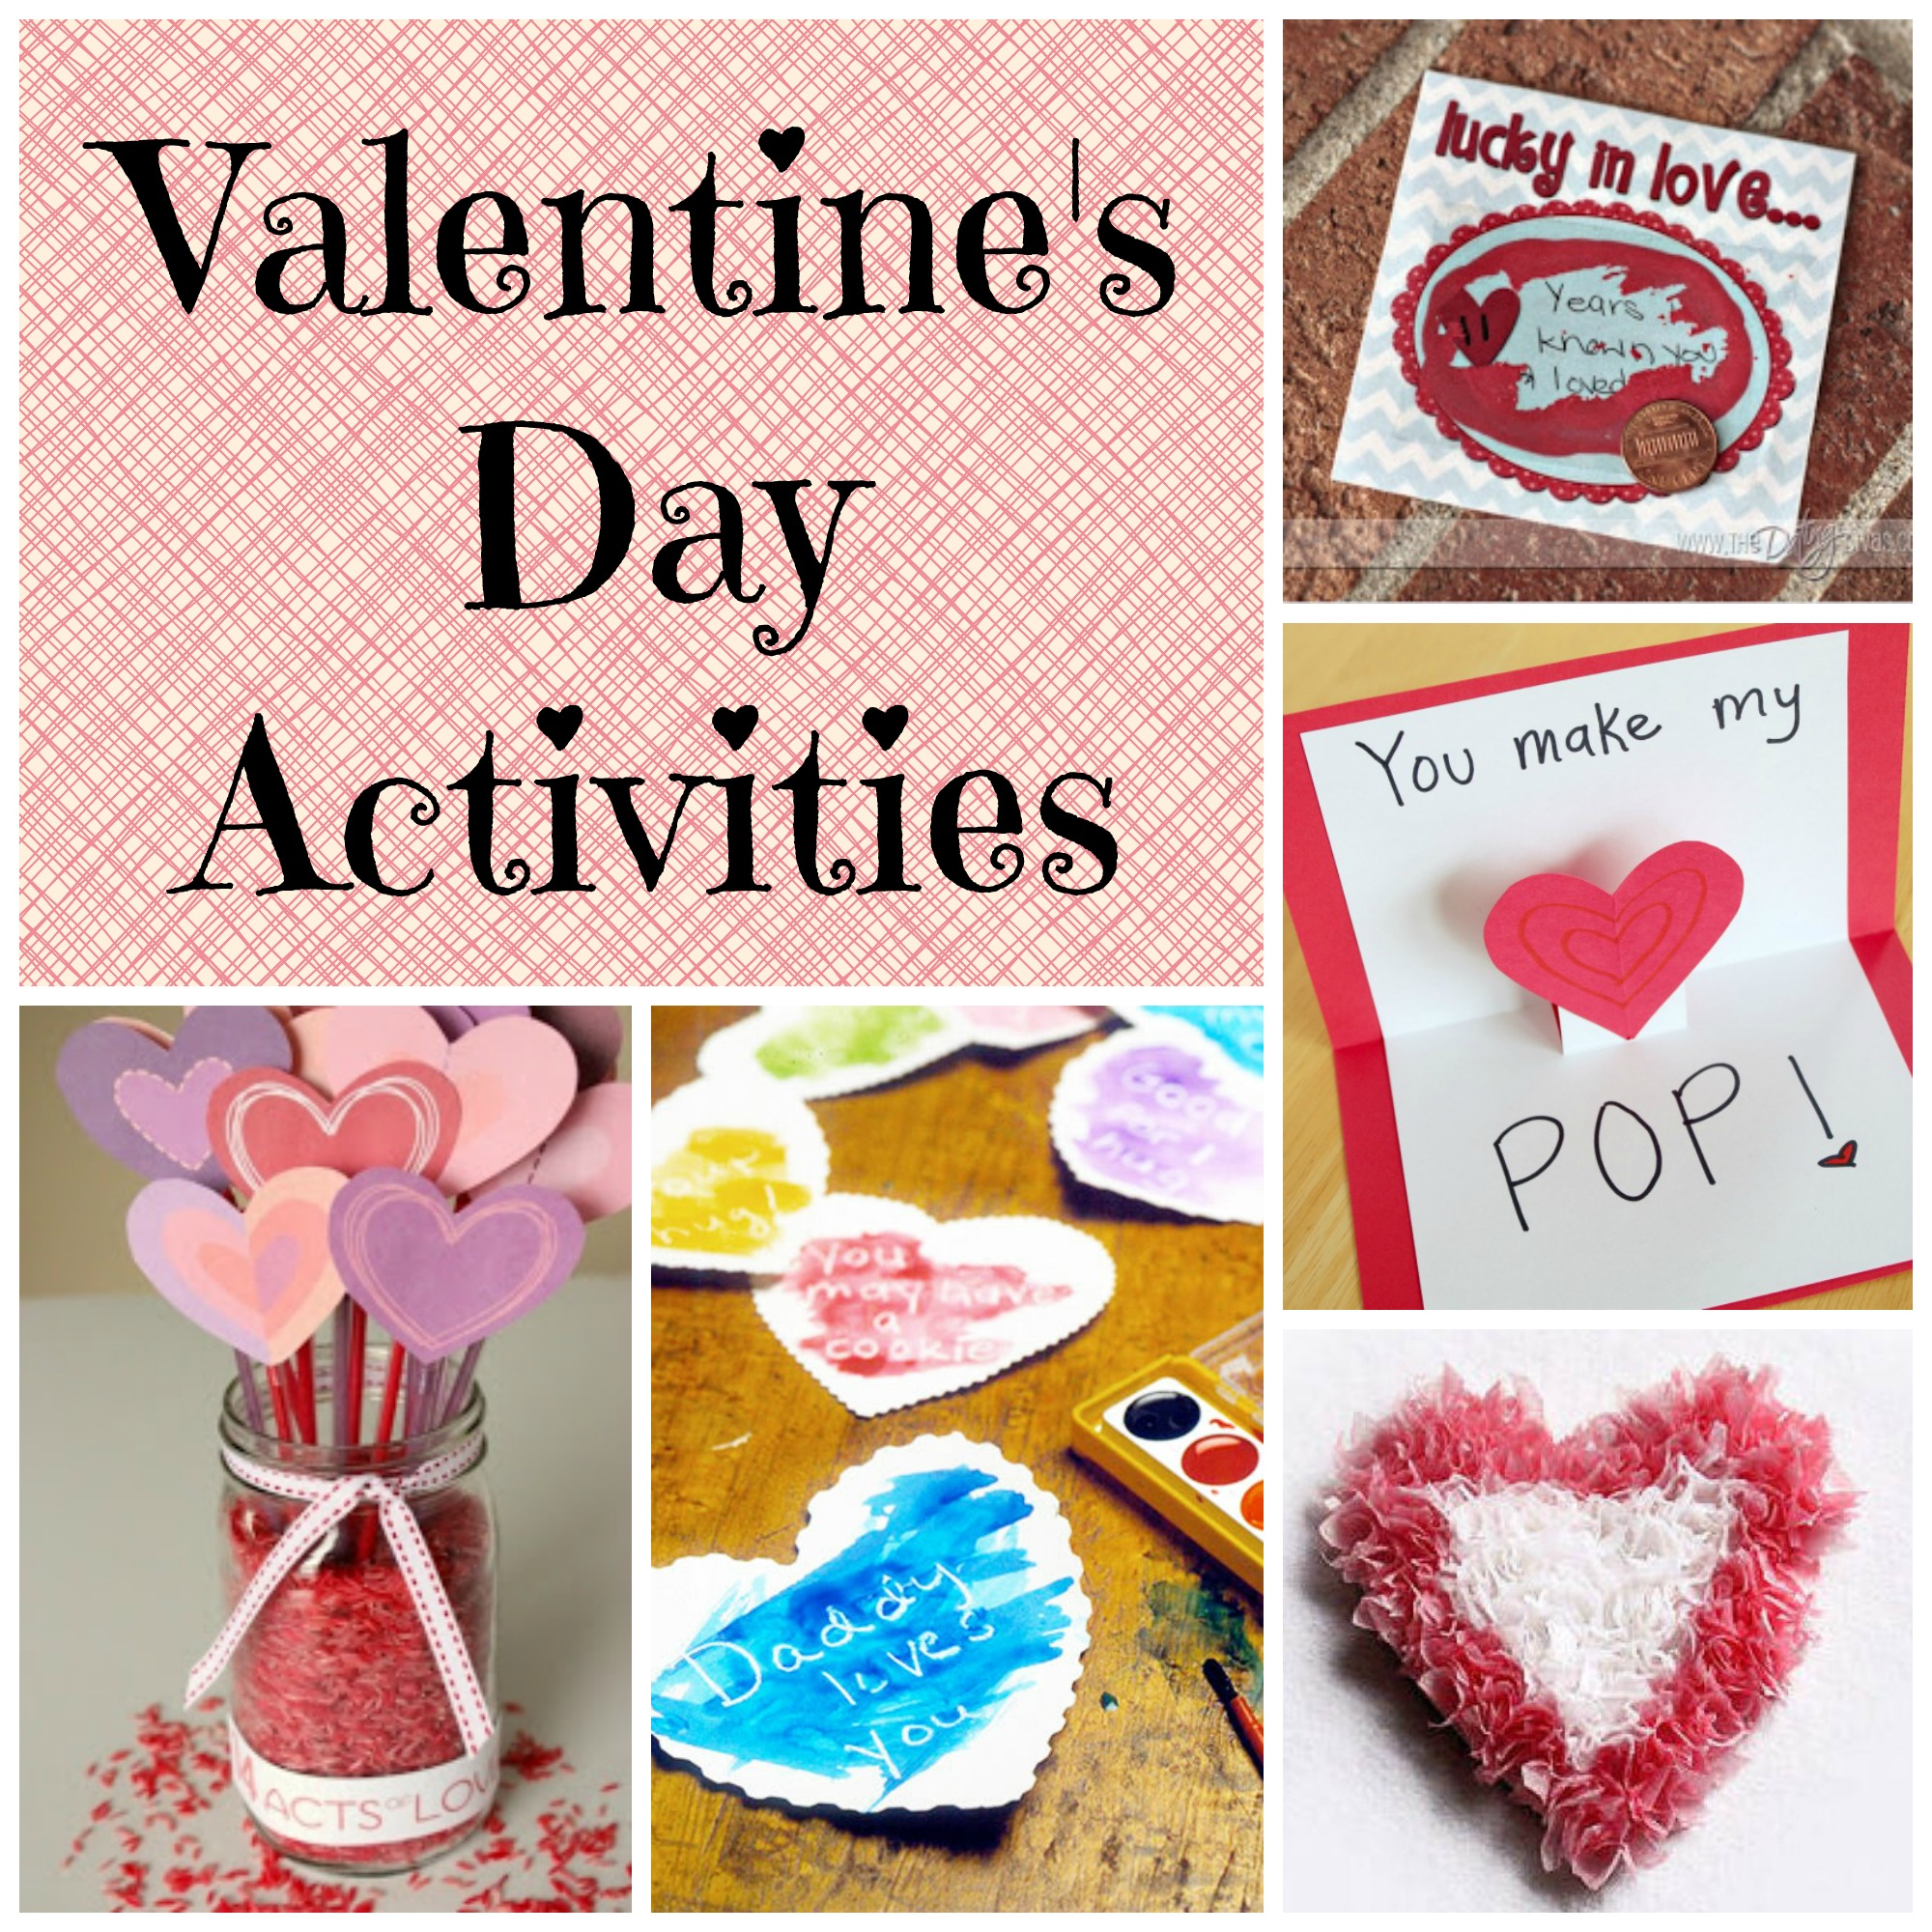 Valentine's Day Breakfast, Desserts & Activities - Saving Cent by Cent